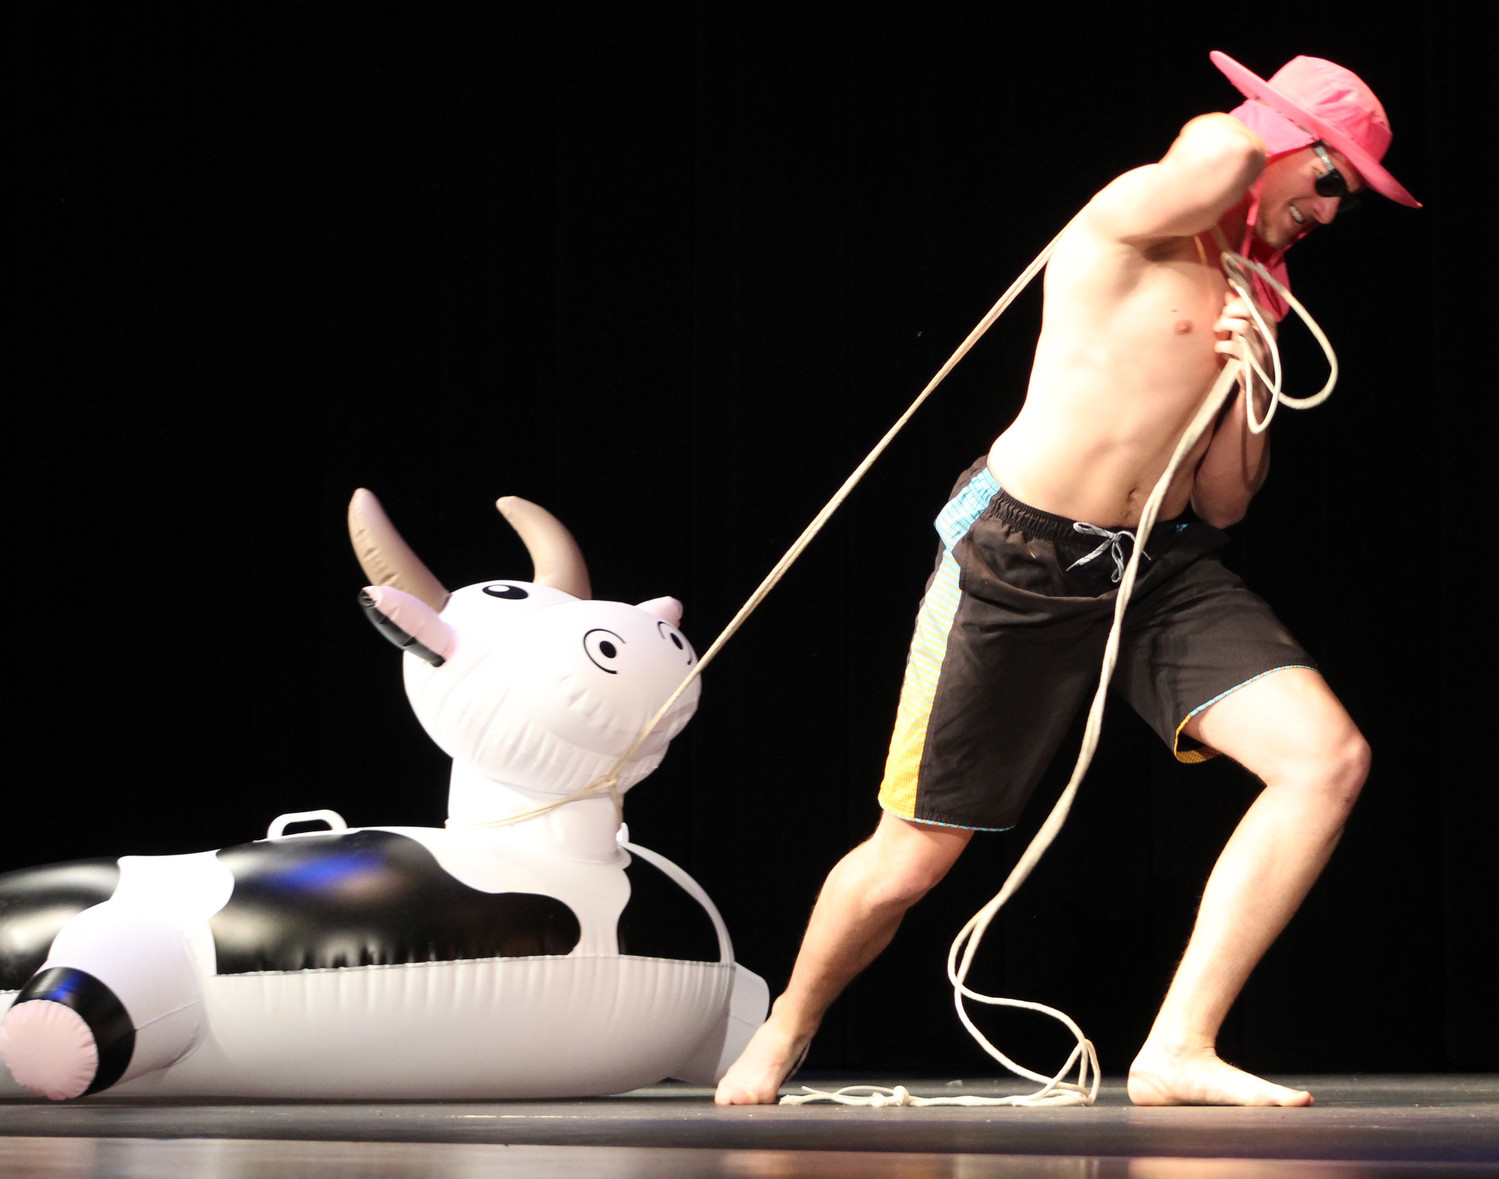 Matt Schopf hauls a cow floaty onto the stage during the swimsuit portion of the Mr. Middletown pageant on April 13.